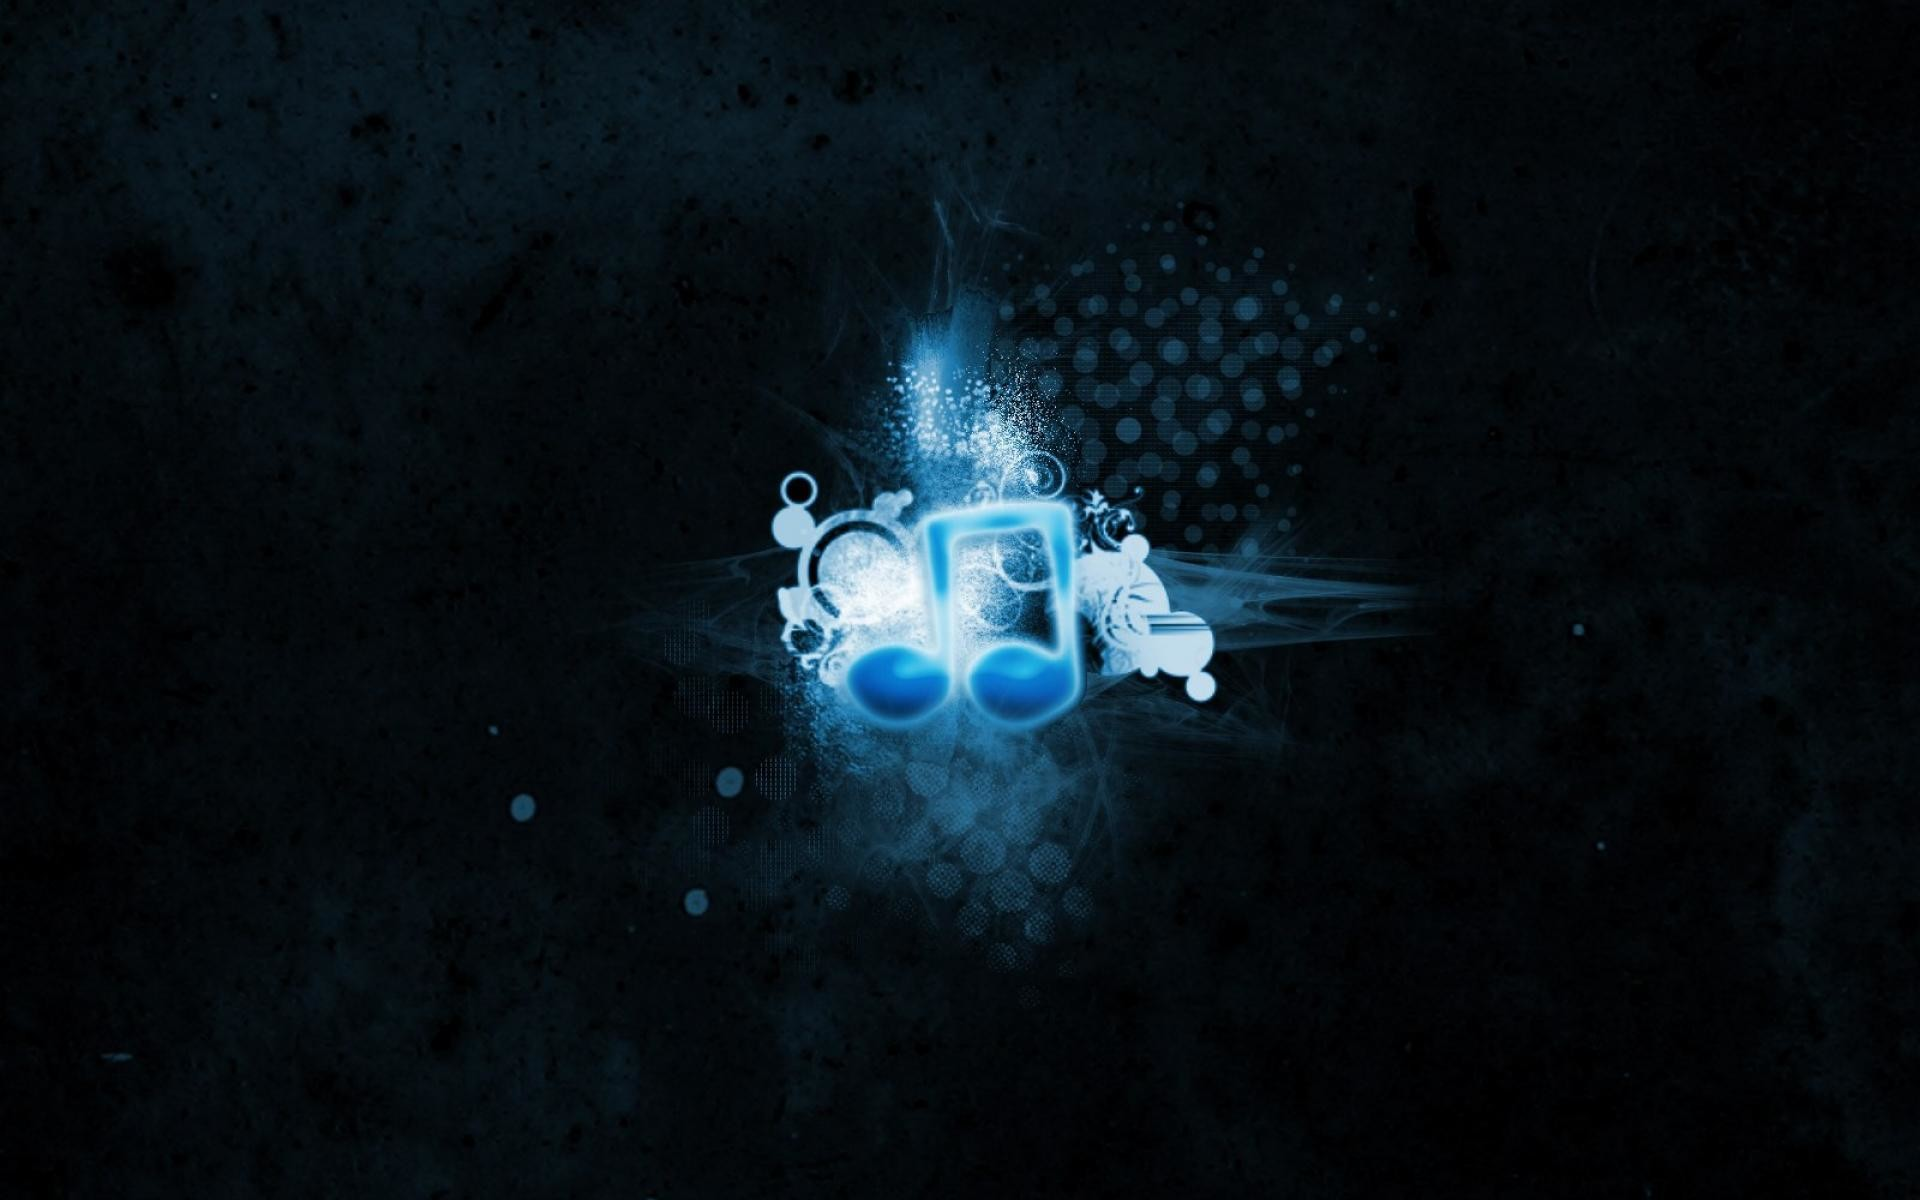 Blue Music Notes Wallpapers | Foolhardi.